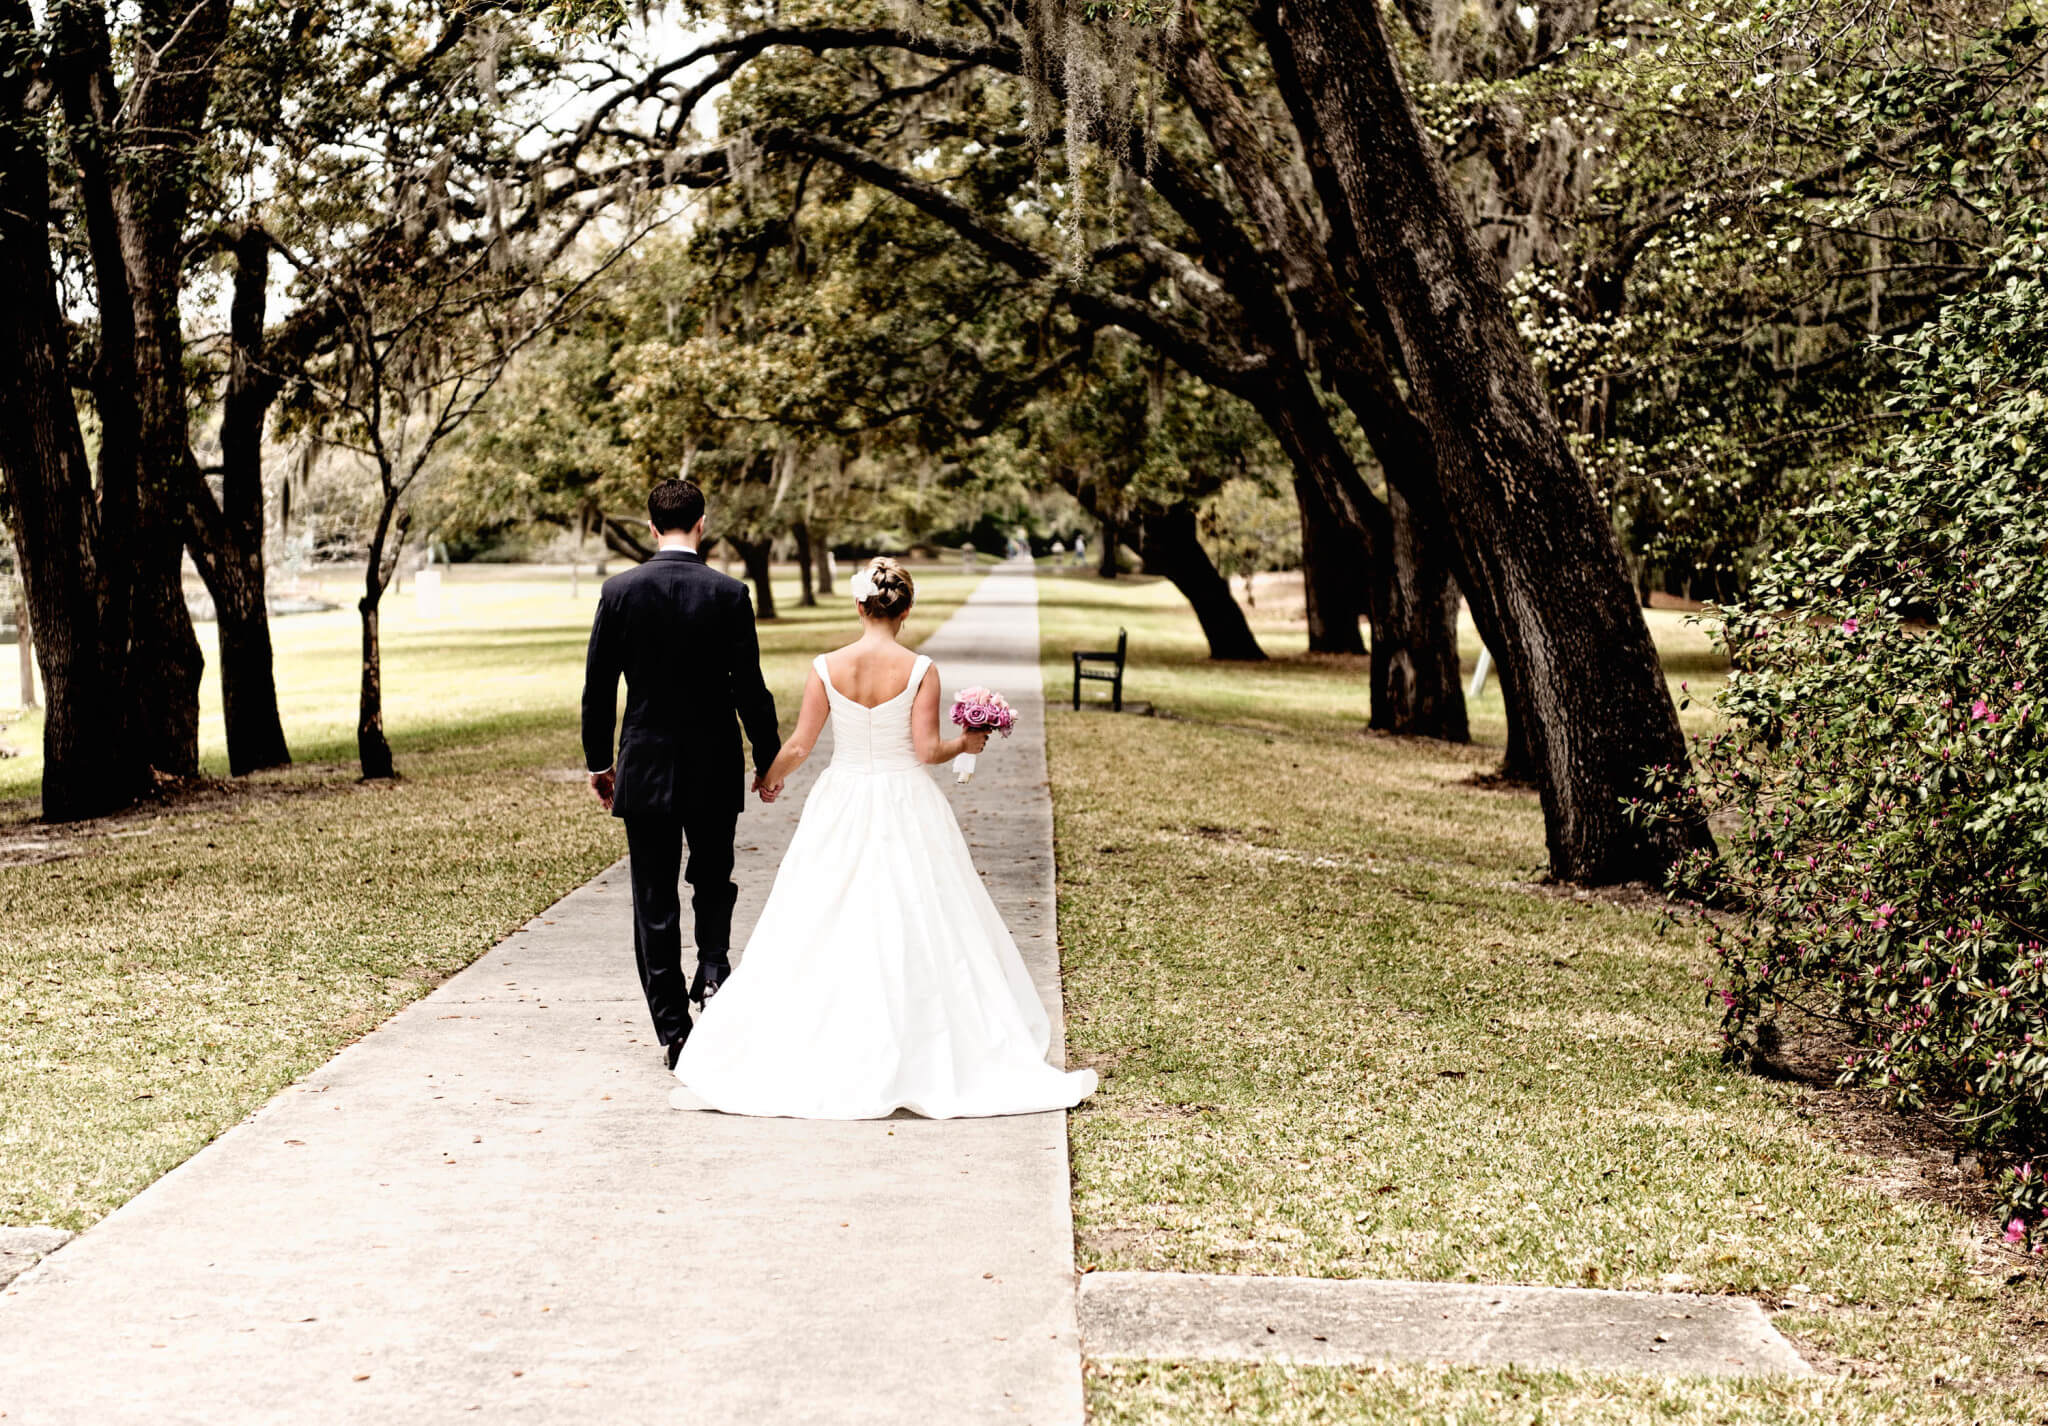 Another beautiful wedding at Brookgreen Gardens